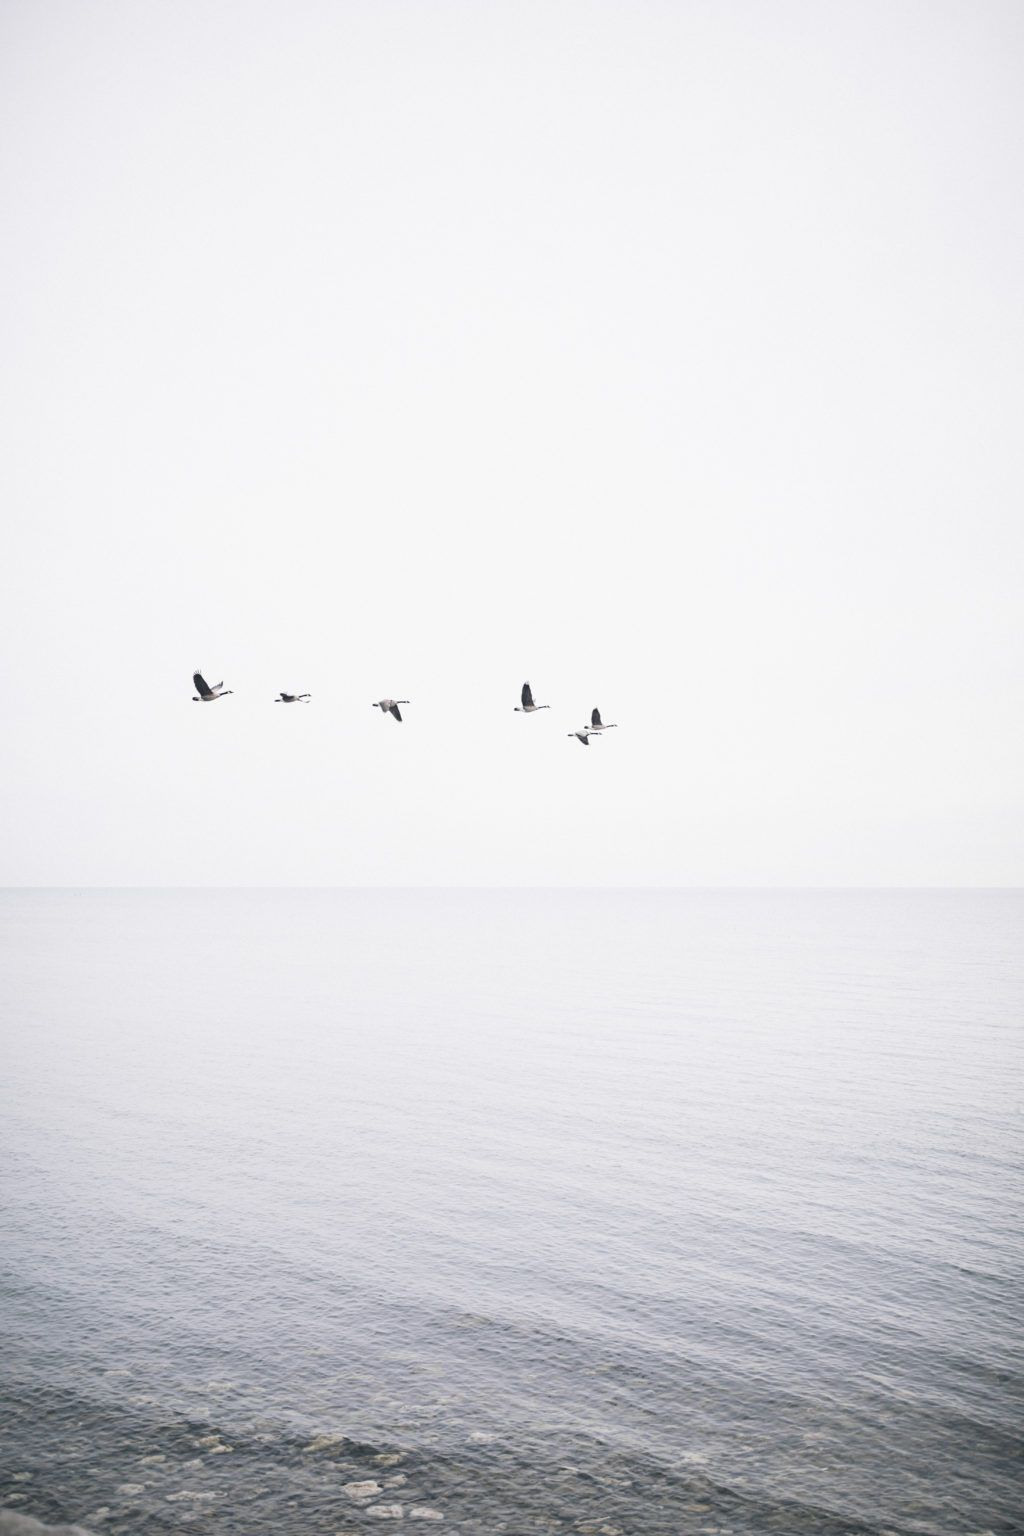 Highs And Lows Minimal Photography Black White Aesthetic Gray